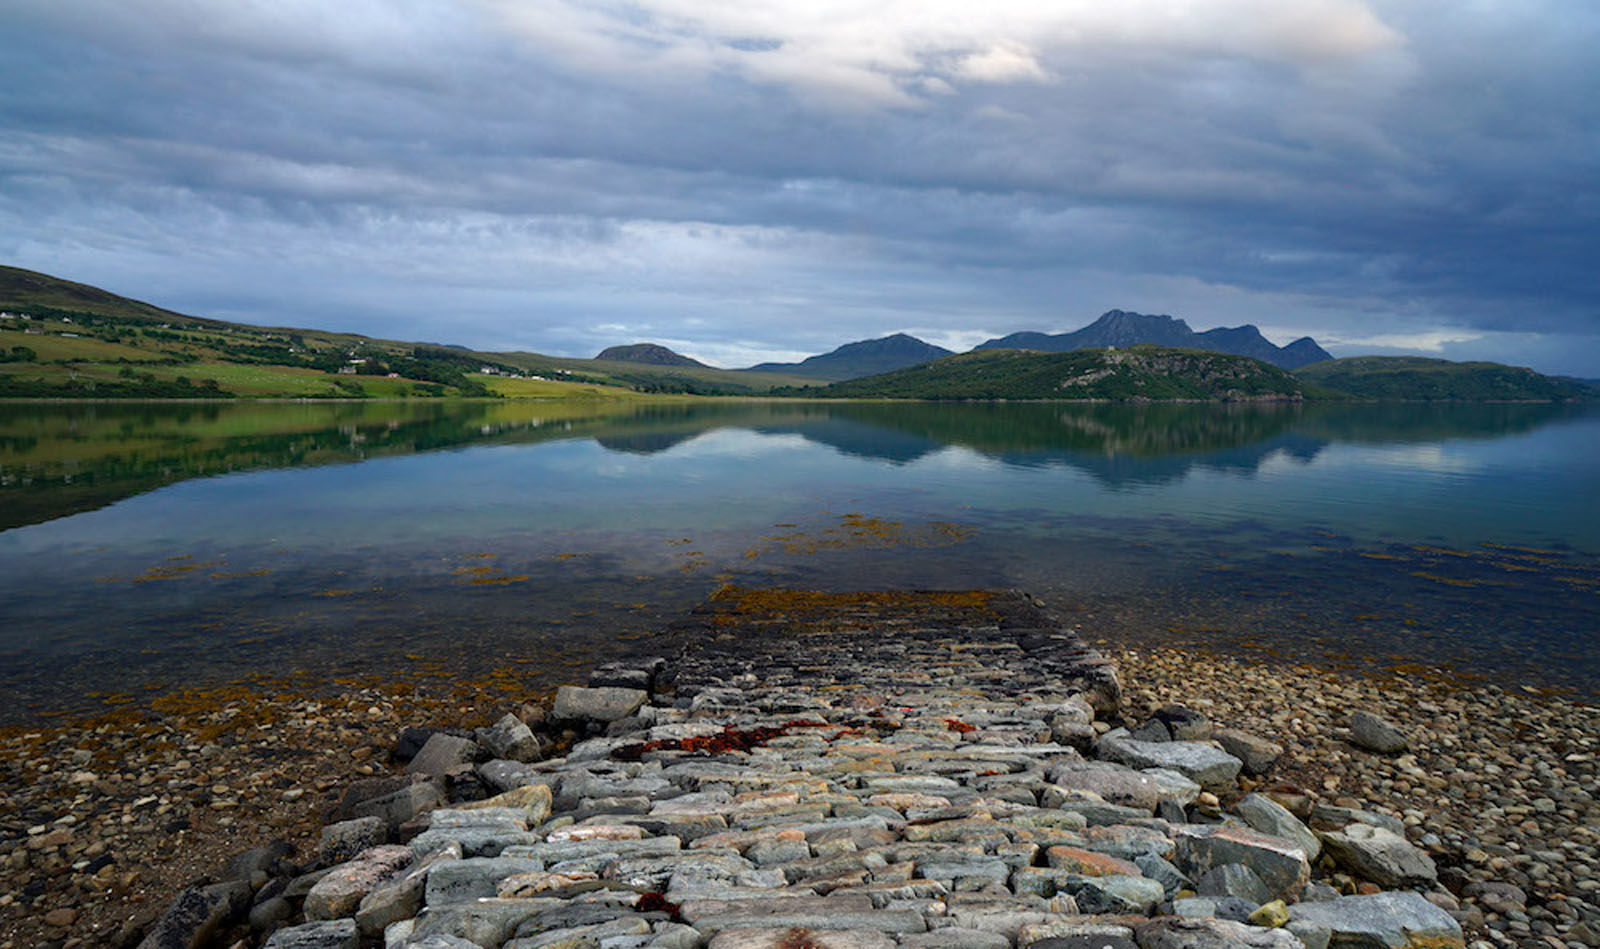 The Cobbled Jetty